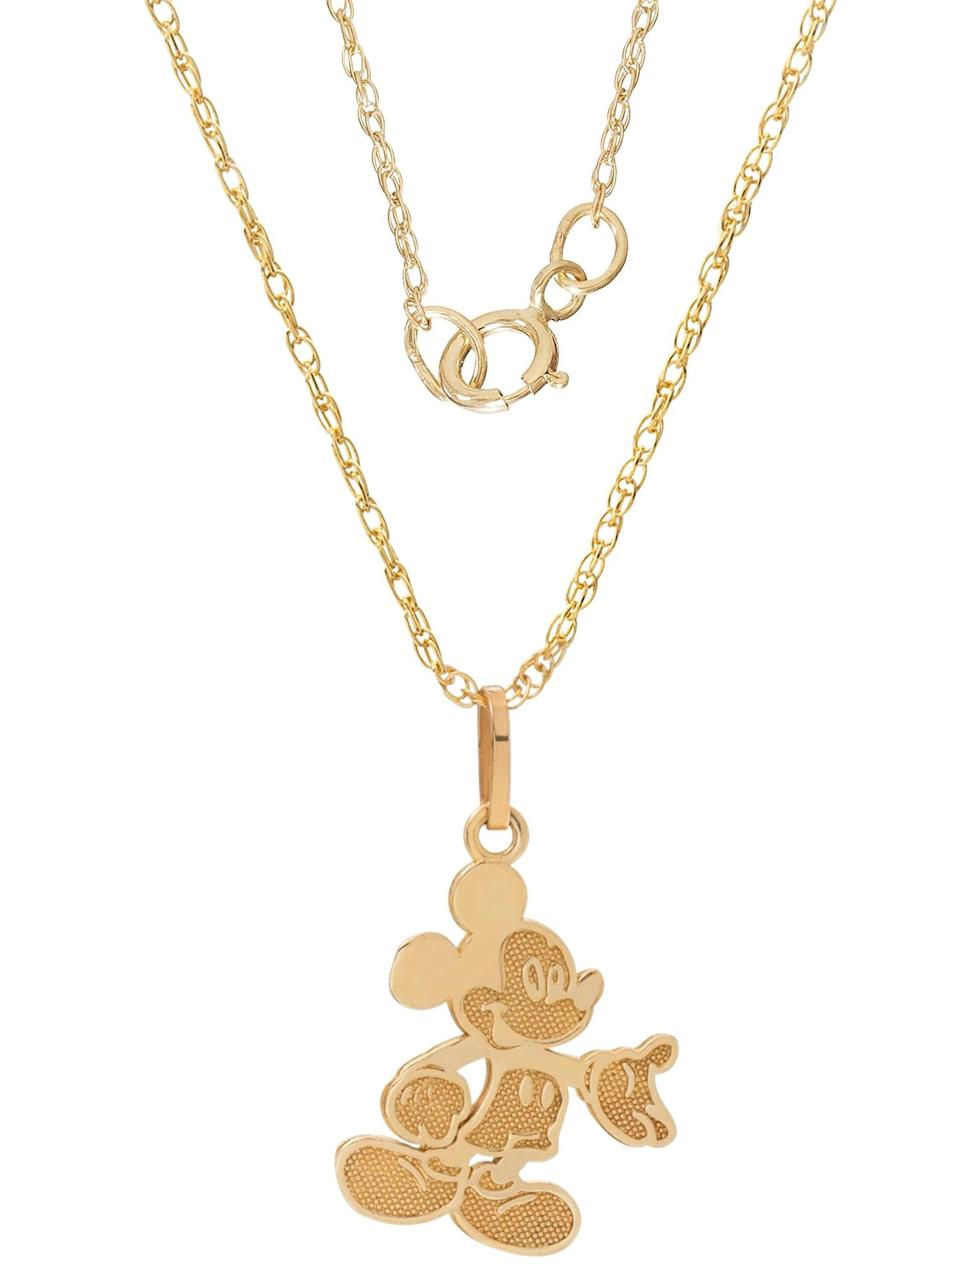 """<h3>Disney 10K Gold Mickey Mouse Pendant<br></h3> <br>A gold-filled chain helps keeps the price of this charming Mickey Mouse necklace shockingly low.<br><br><em>Shop fine jewelry at <strong><a href=""""https://www.walmart.com/browse/jewelry/fine-jewelry/3891_8709006_9465826_1228254"""" rel=""""nofollow noopener"""" target=""""_blank"""" data-ylk=""""slk:Walmart"""" class=""""link rapid-noclick-resp"""">Walmart</a></strong></em><br><br><strong>Disney</strong> Mickey Mouse Pendant Necklace with Gold-Filled Chain, $, available at <a href=""""https://go.skimresources.com/?id=30283X879131&url=https%3A%2F%2Fwww.walmart.com%2Fip%2FDisney-10kt-Yellow-Gold-Full-Body-Mickey-Mouse-Pendant-Necklace-with-Gold-Filled-Chain%2F48201824"""" rel=""""nofollow noopener"""" target=""""_blank"""" data-ylk=""""slk:Walmart"""" class=""""link rapid-noclick-resp"""">Walmart</a><br><br><br>"""